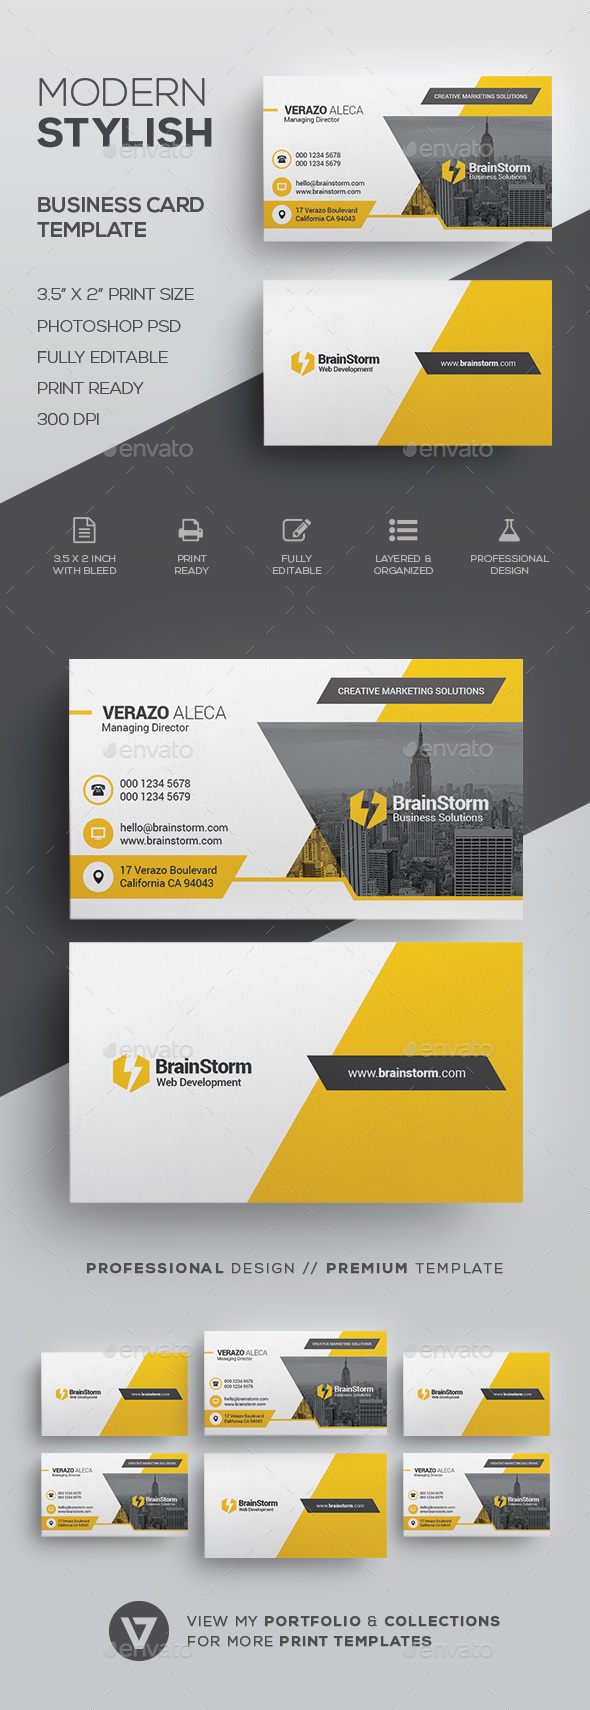 Creative Modern Business Card Template by verazo | GraphicRiver